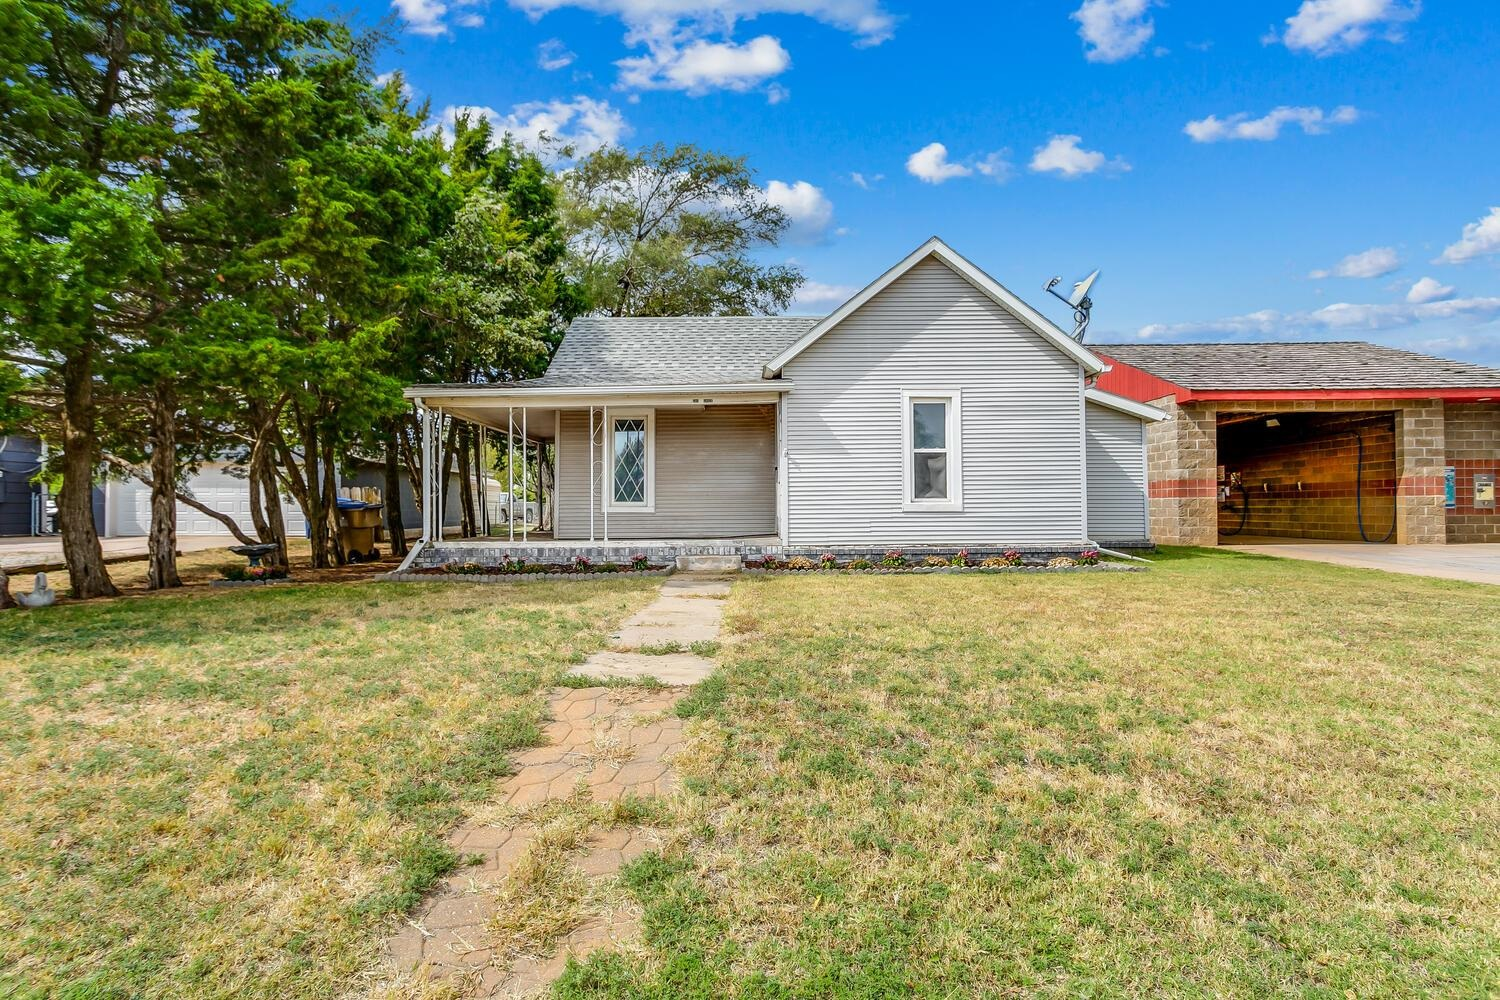 """Great starter home or investment property!  This two-bedroom one bath home has so much potential!  Enjoy the backyard oasis with a storage shed, fire pit, alley access, and plenty of shade.  Come love small town living!  This home is being sold offered in """"As Is present condition"""" seller to make no repairs."""